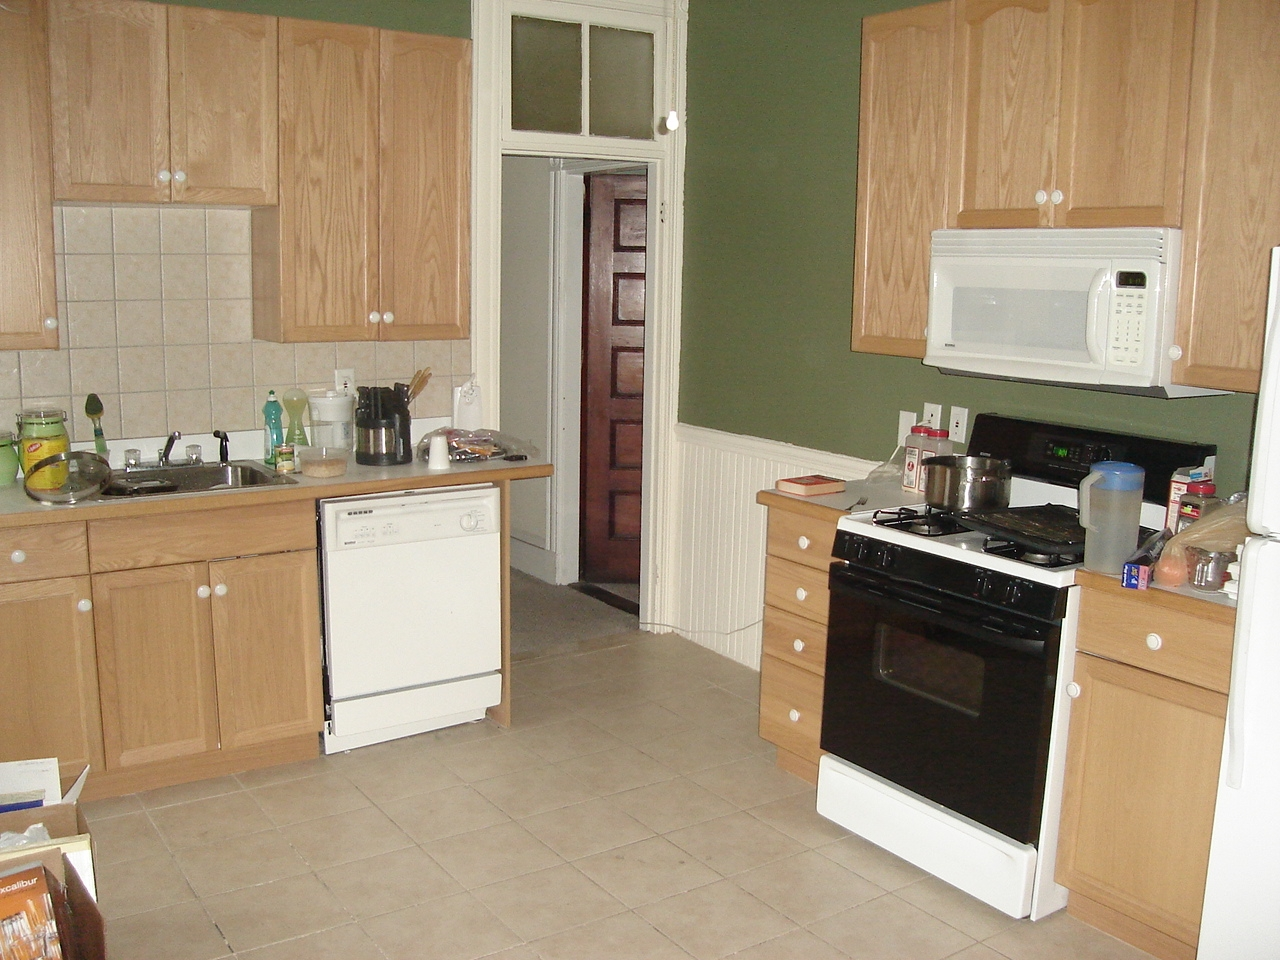 3.5 Beds, 1 Bath apartment in Brookline for $3,500